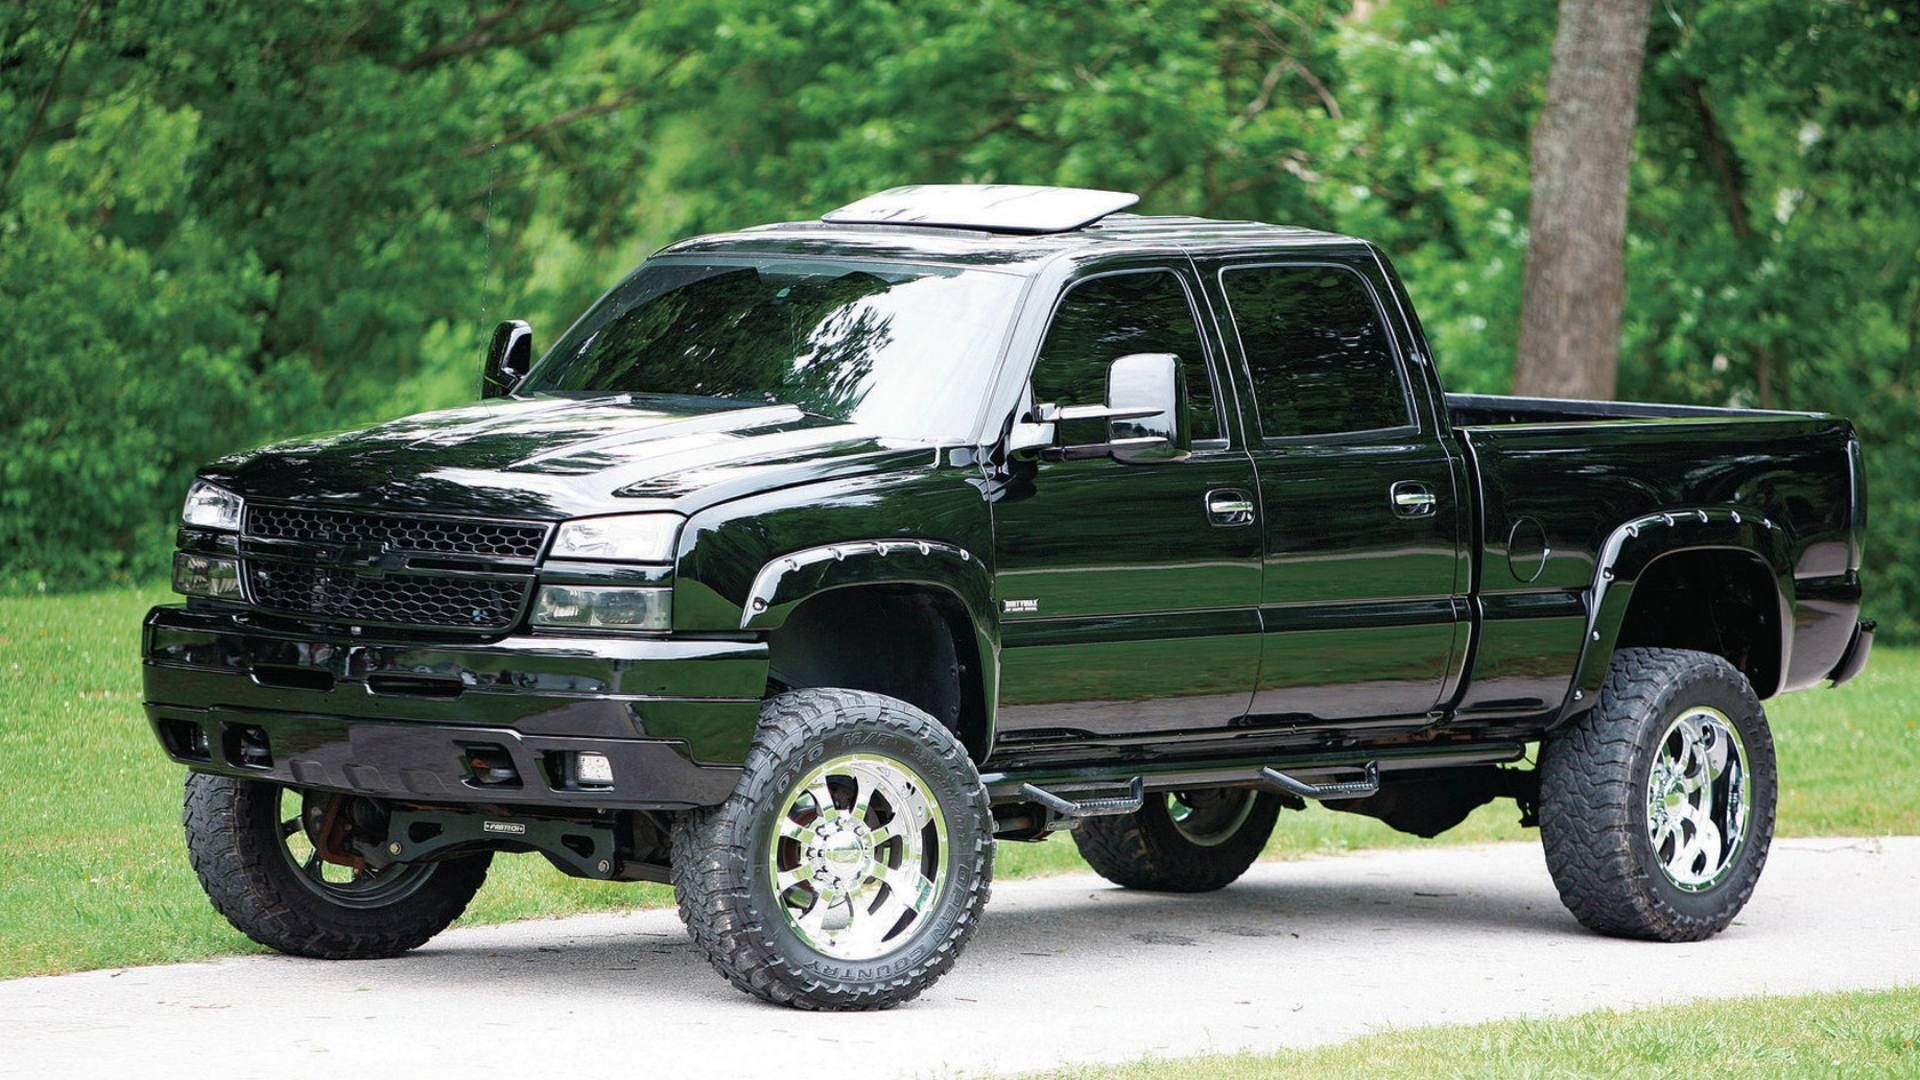 Regardless whether a new or used truck size matters no i m not talking about how big of a lift you put on your truck what i m talking about are th